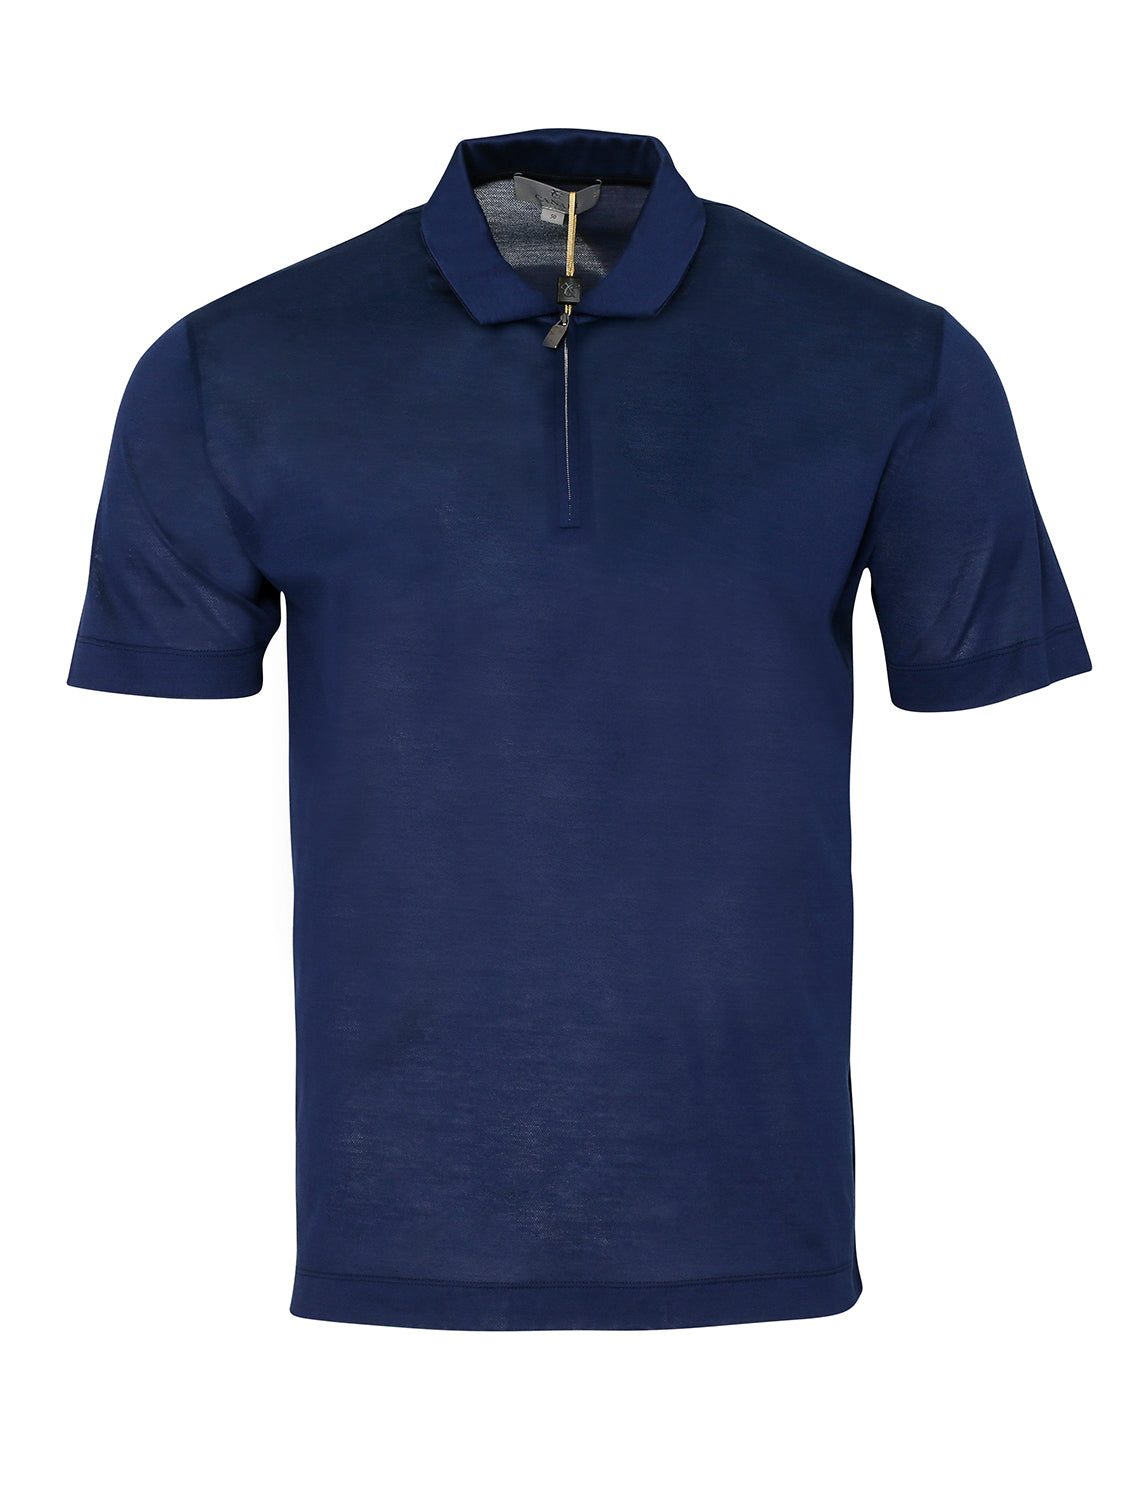 Canali Super Soft Silk & Wool Zip Polo (Navy/ Midnight ) - Union 22